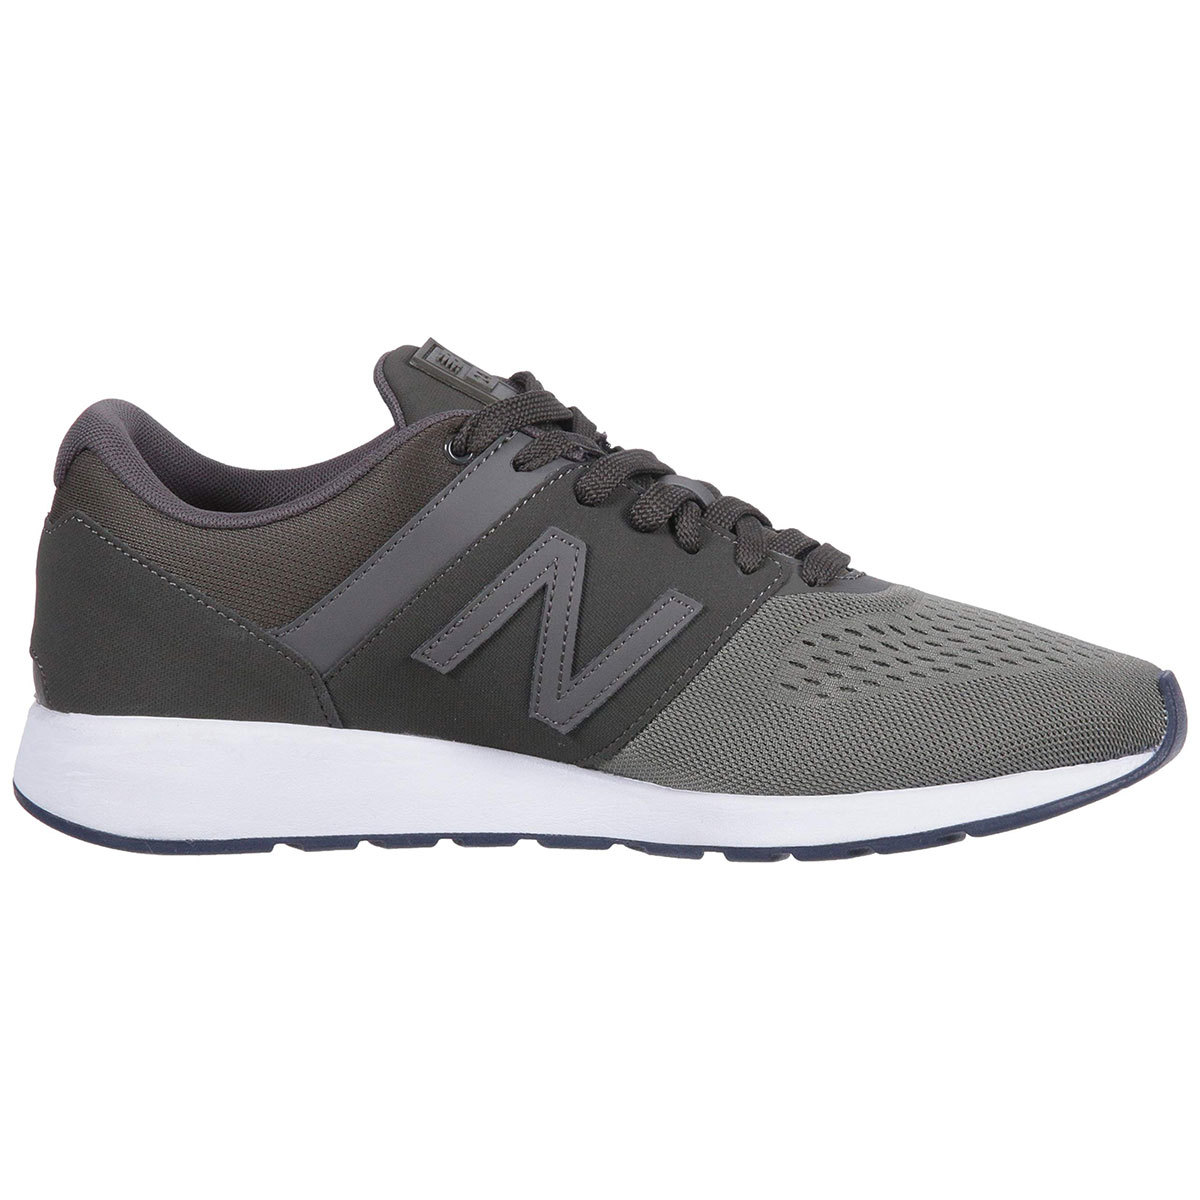 New Balance Men's 24 Textile Sneakers - Green, 12